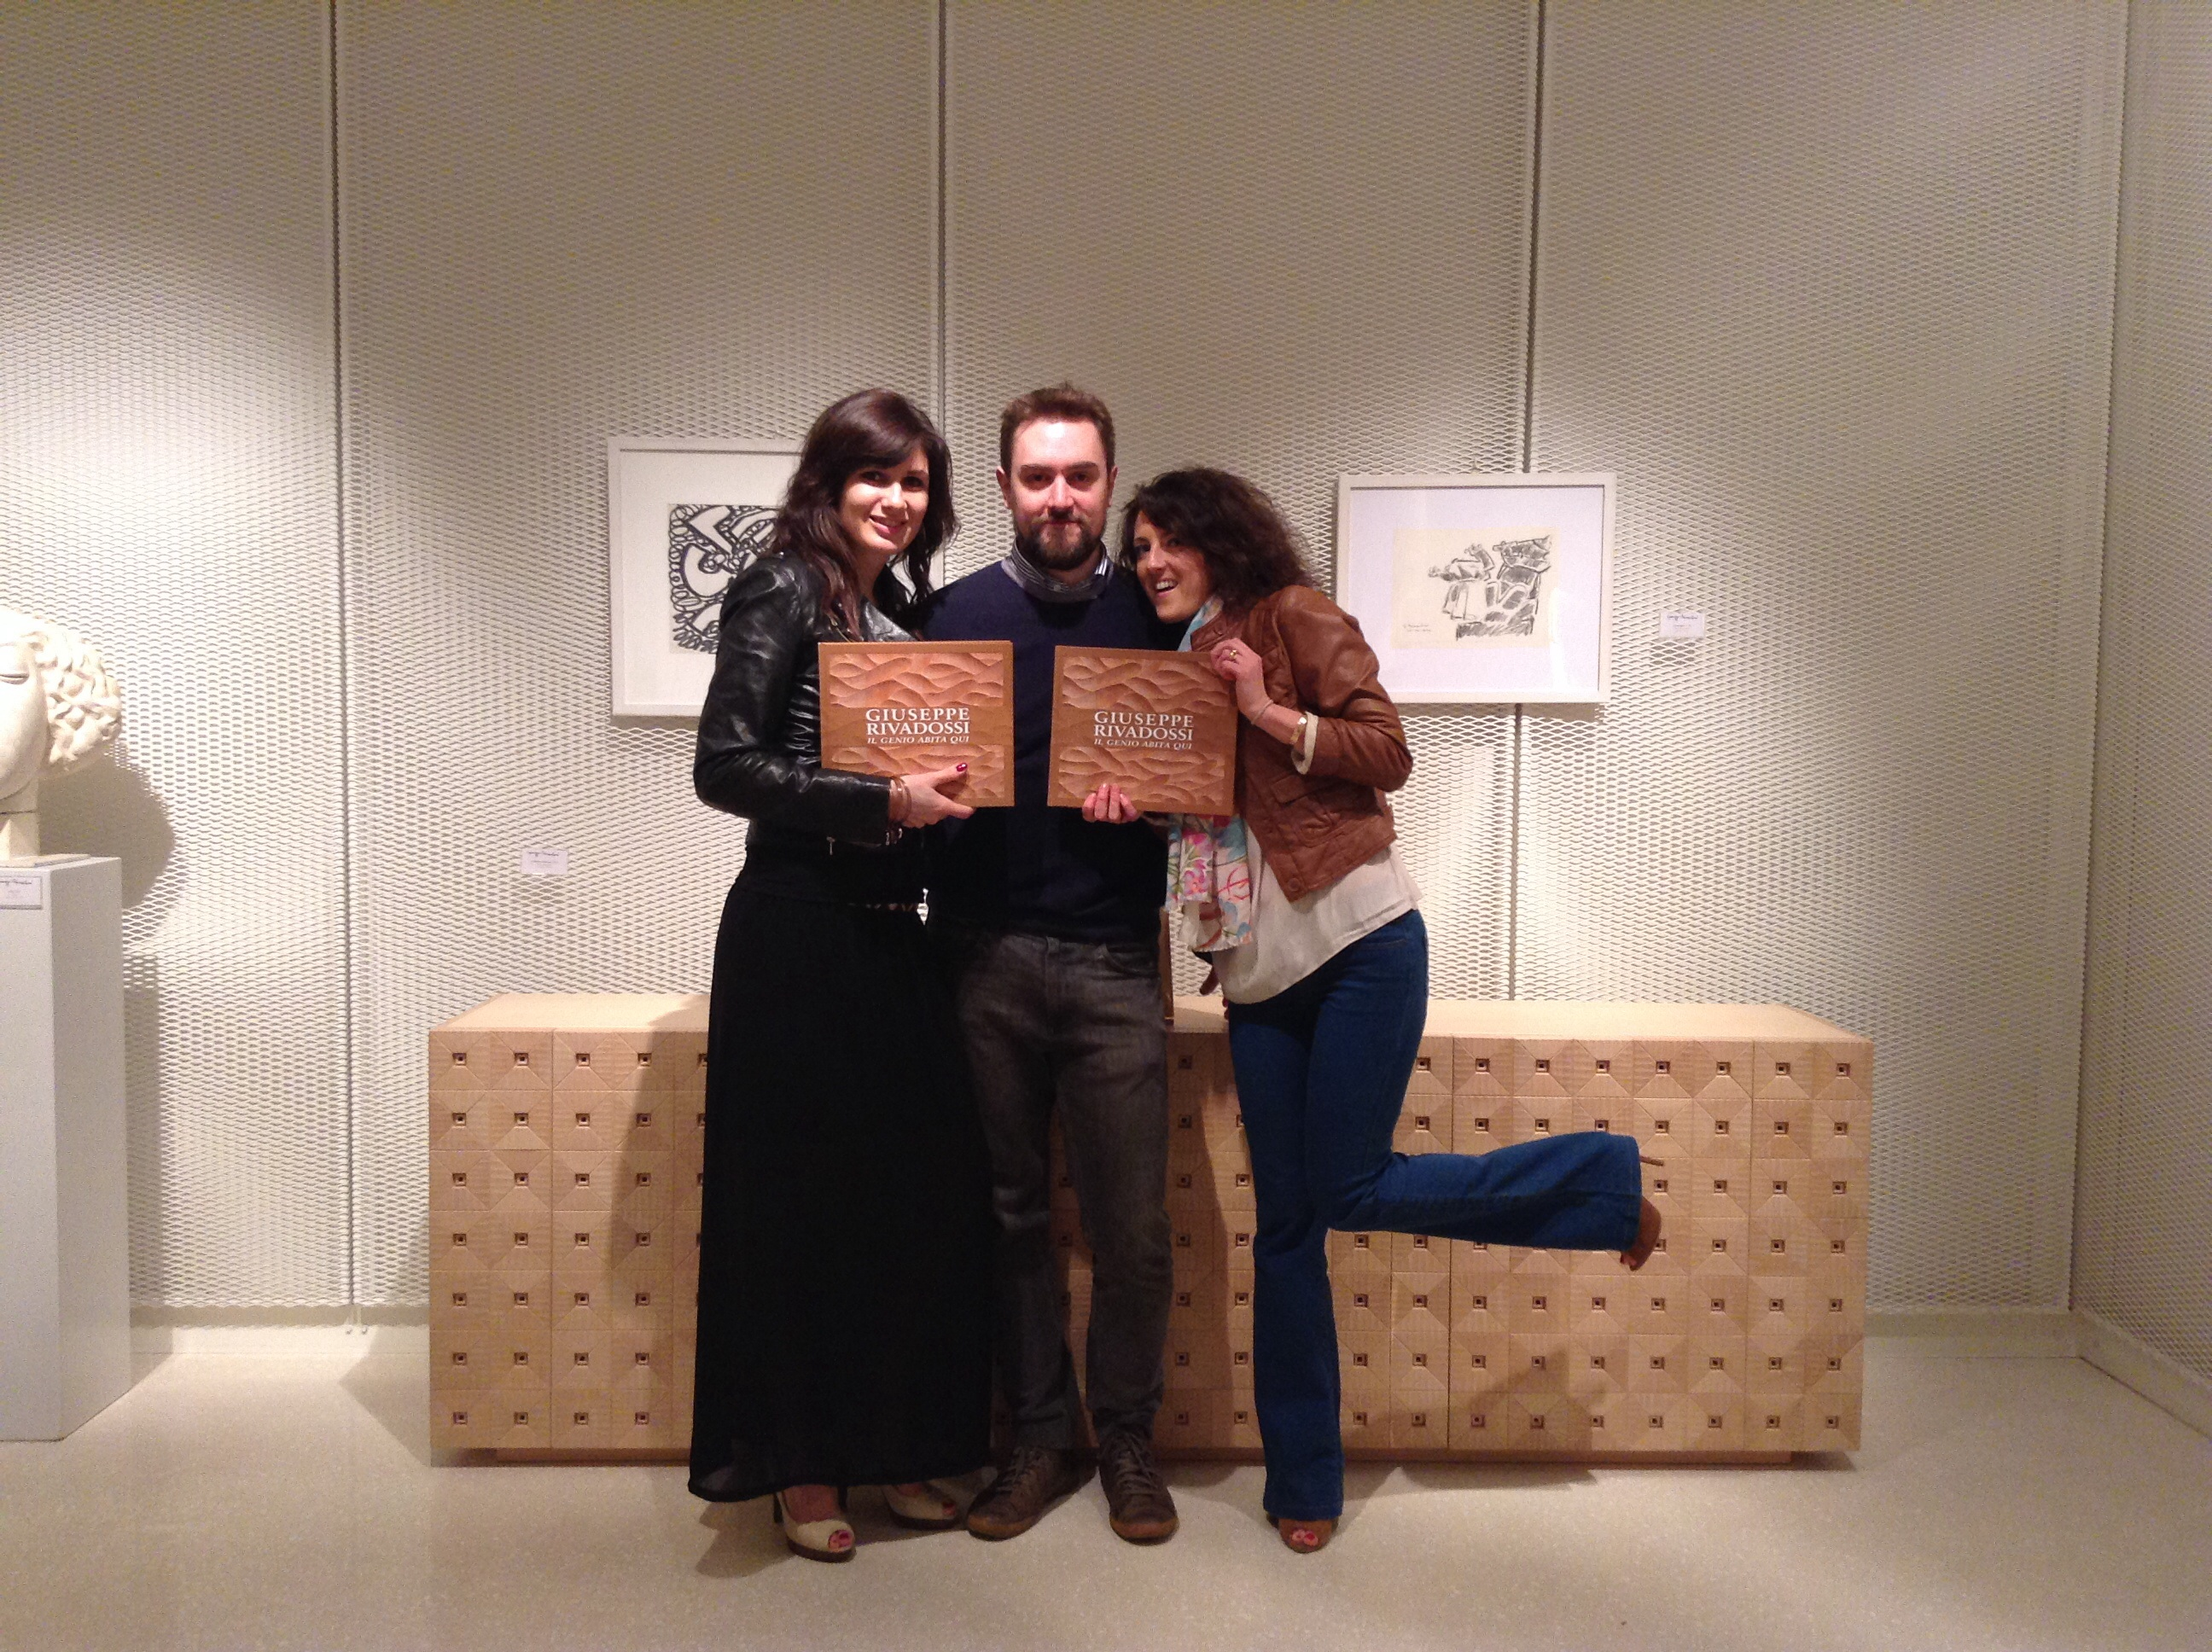 Fans posed with our catalogue and Mossaic Dresser